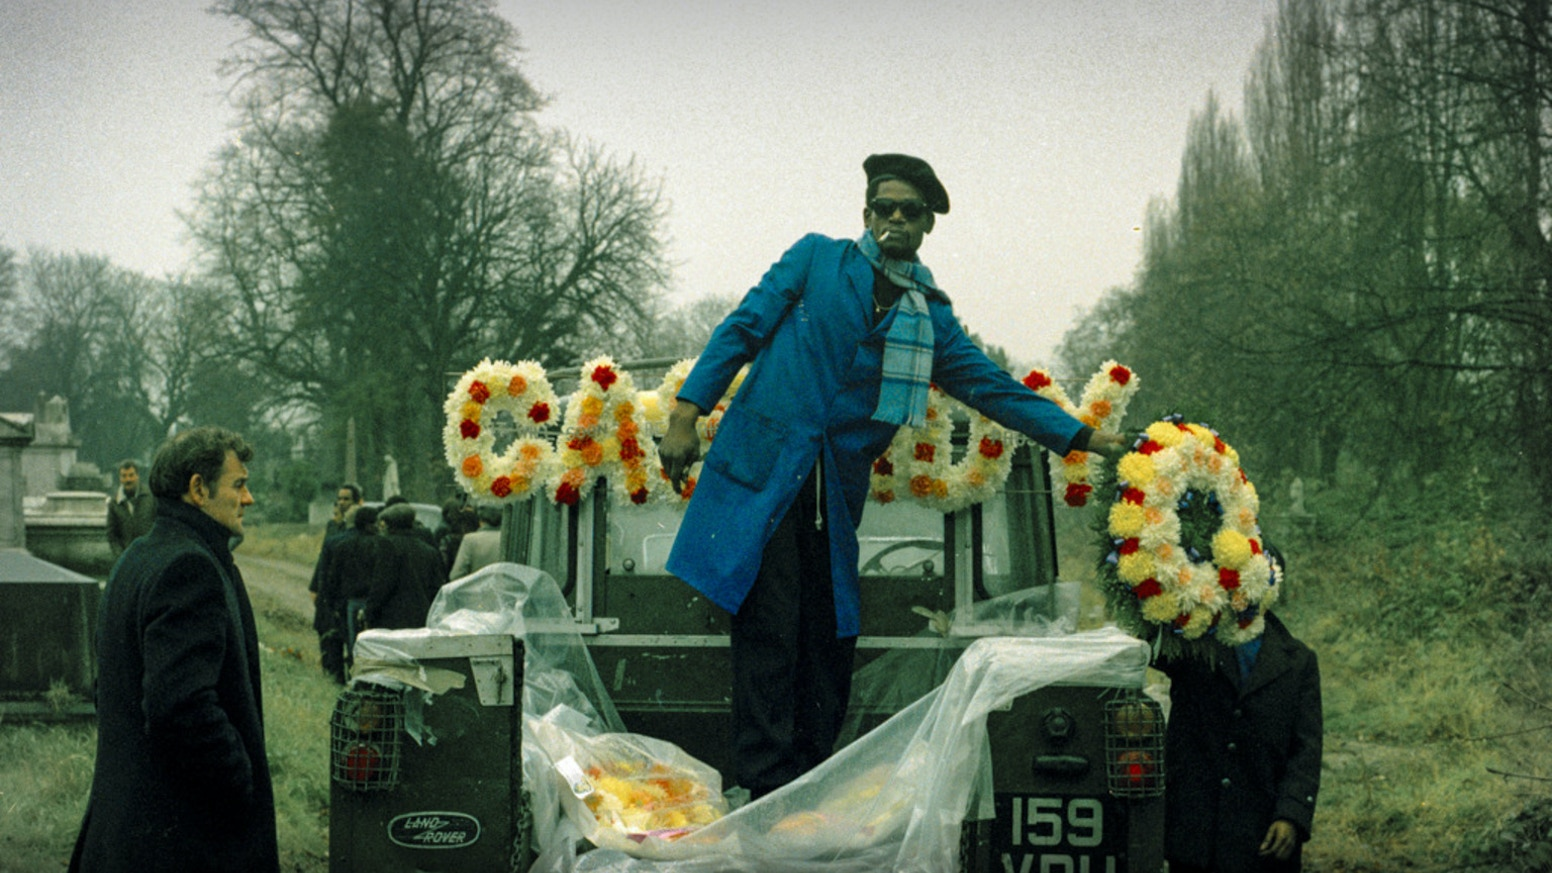 A photographic book documenting 50 years of African Caribbean funerals in London by Charlie Phillips.